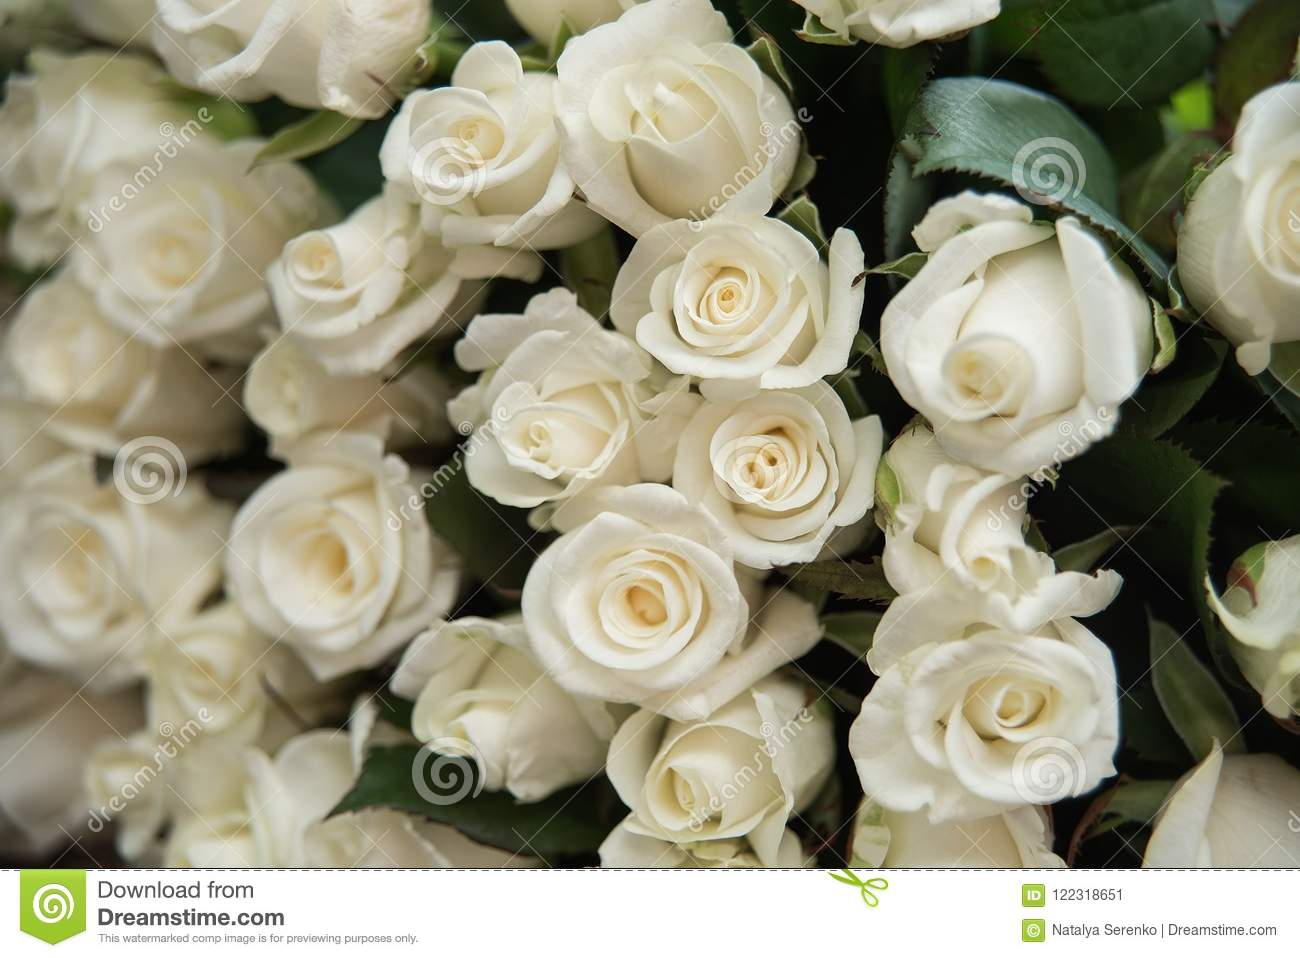 close-up of a huge bouquet of white roses